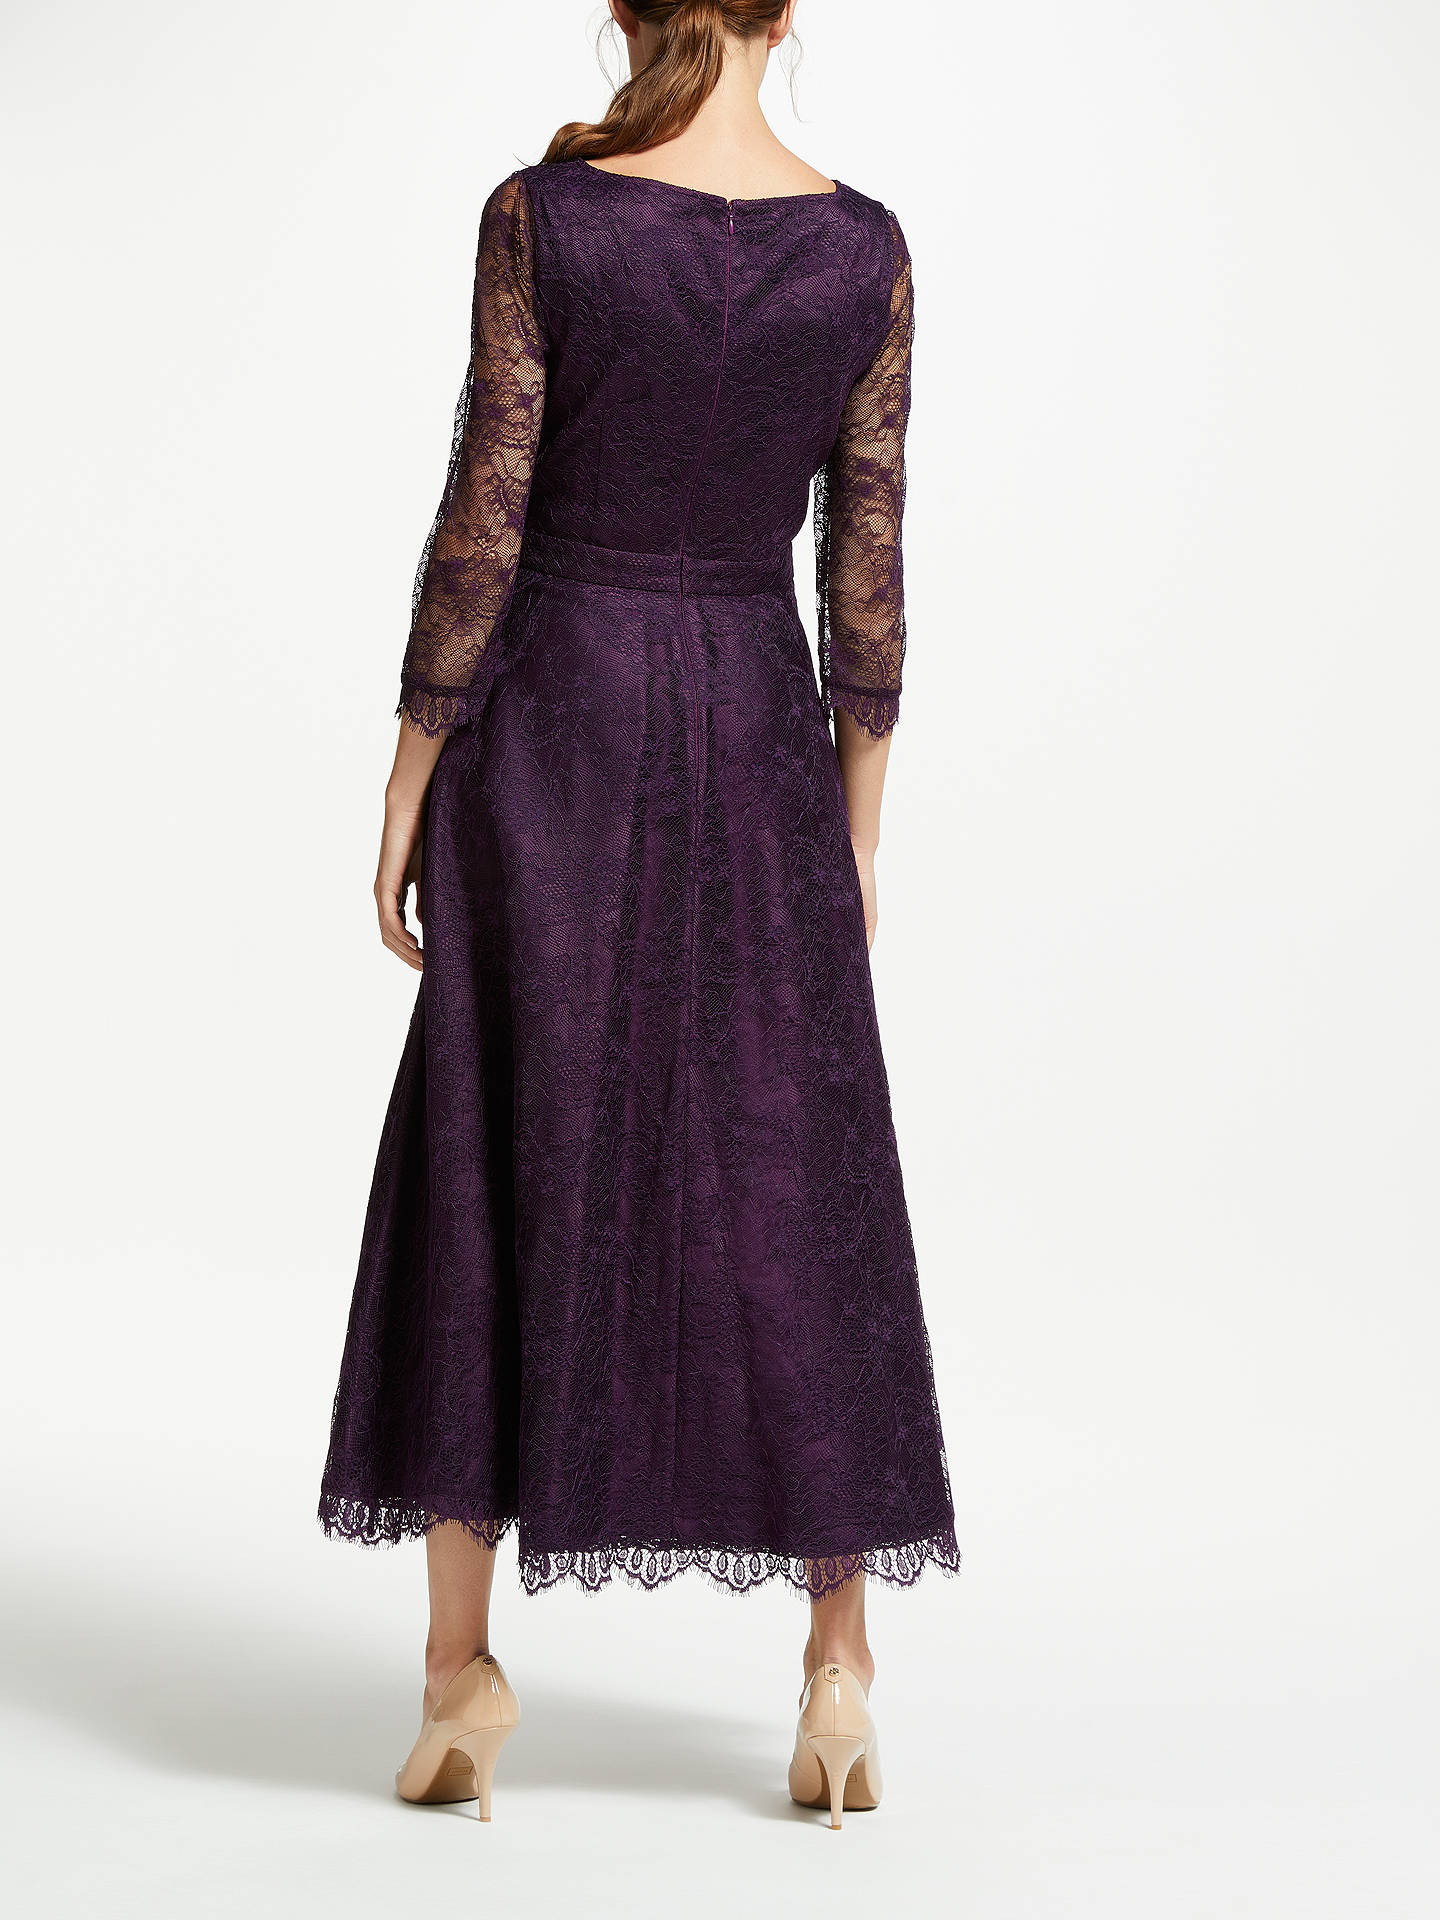 Buy Bruce by Bruce Oldfield Lace 3/4 Sleeve Dress, Wine Tasting, 8 Online at johnlewis.com